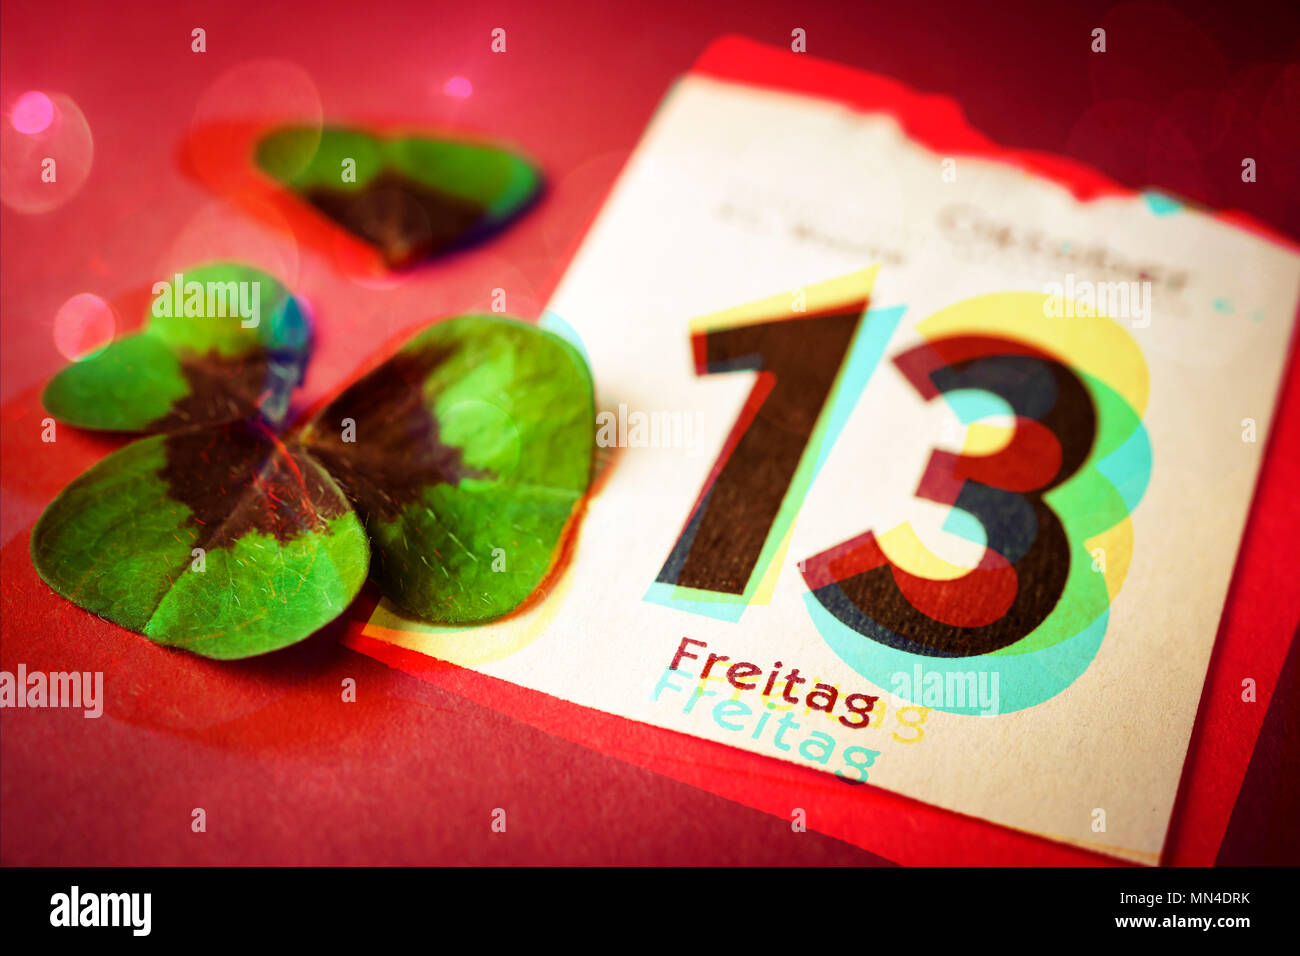 Calendar Sheet Friday the 13th and shredded clover, Kalenderblatt Freitag der 13. und zerrissenes Kleeblatt - Stock Image